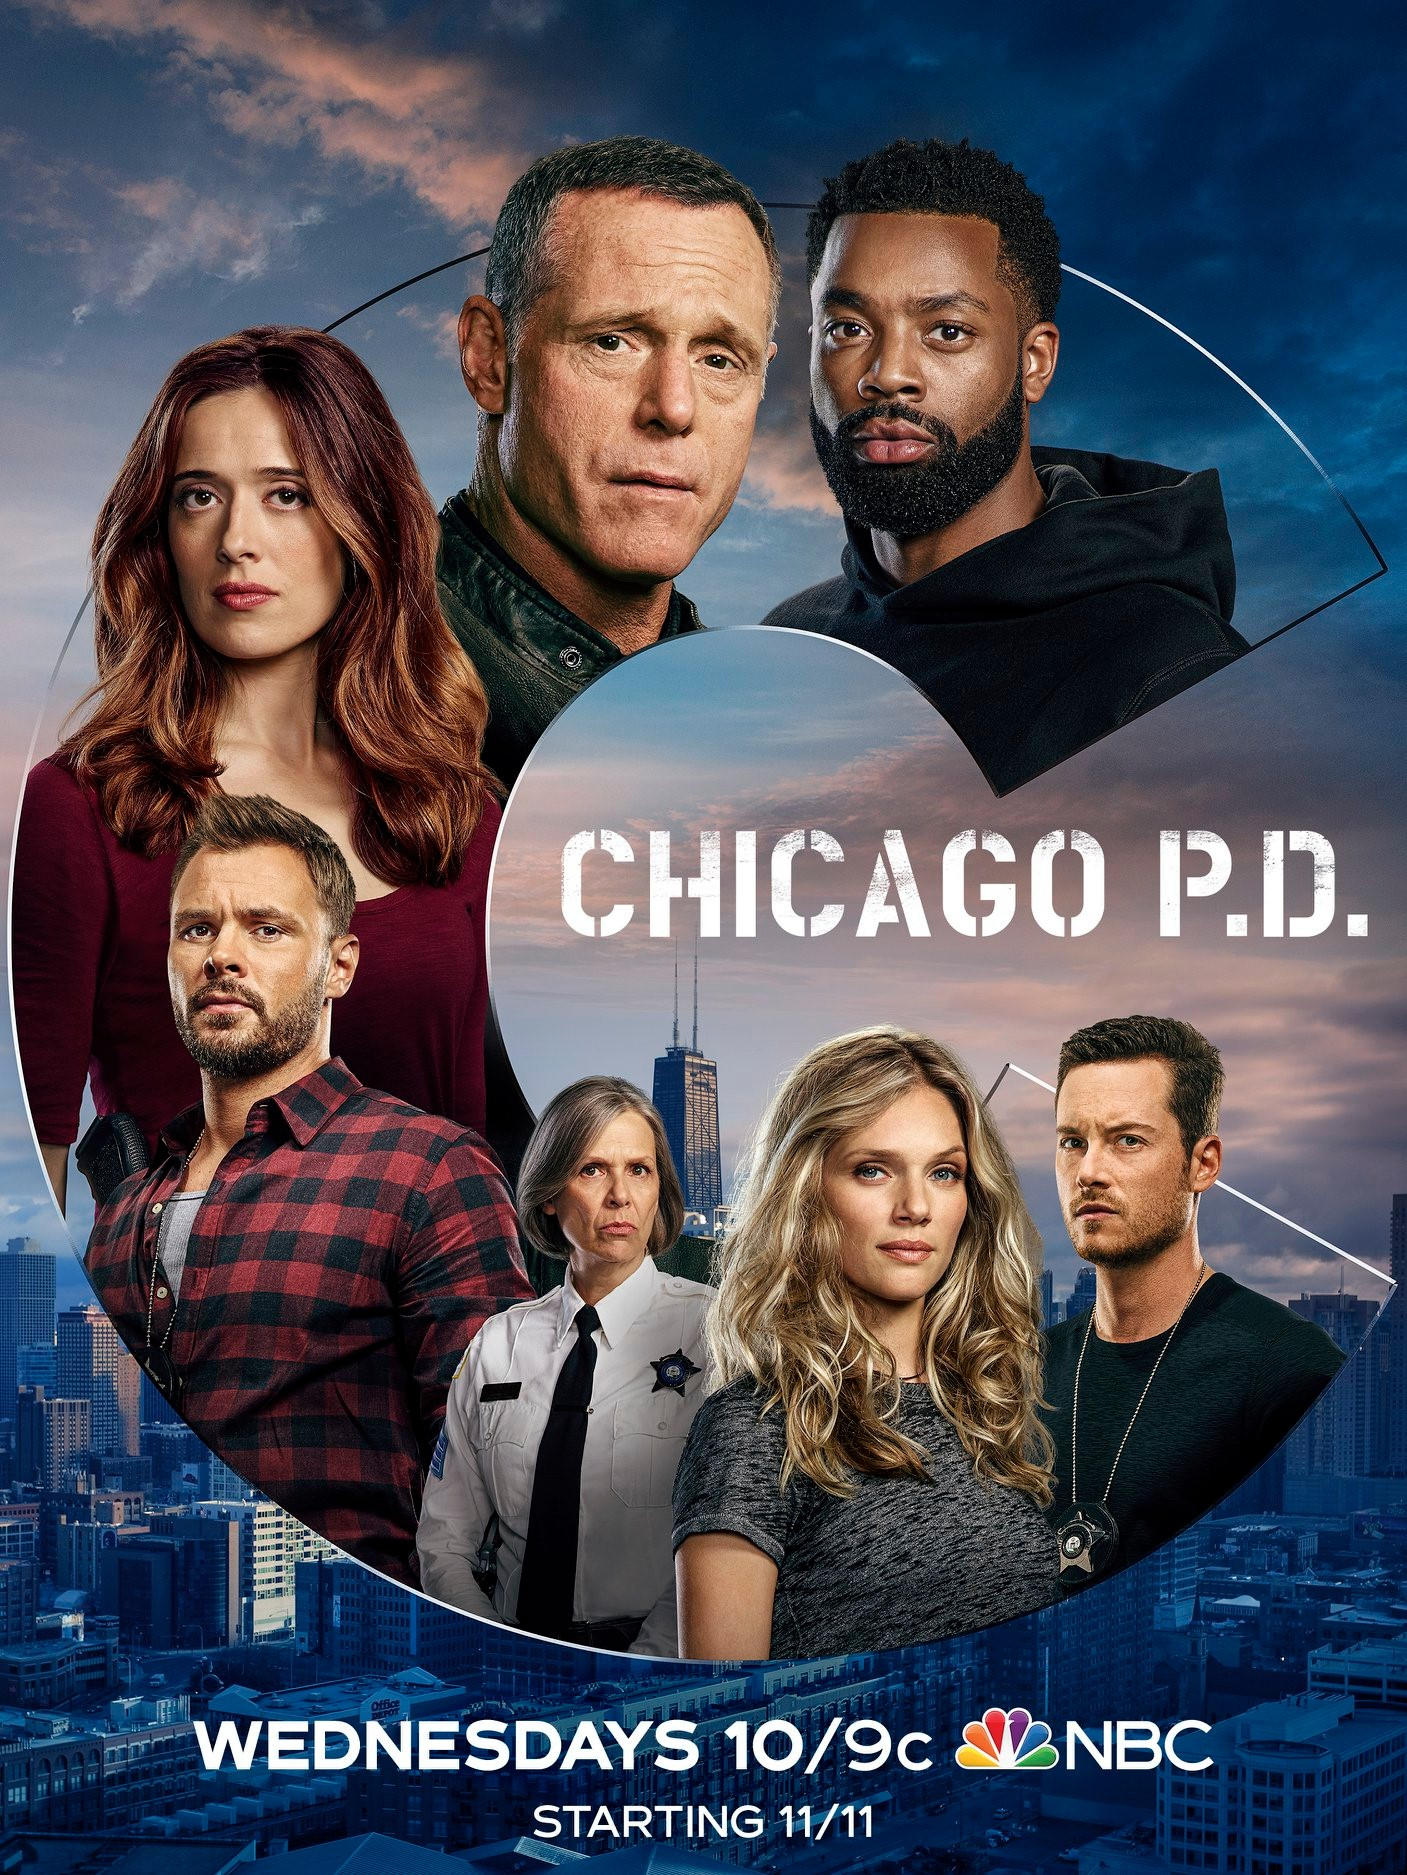 Chicago P.D. Season 8 Episode 1 - Fighting Ghosts